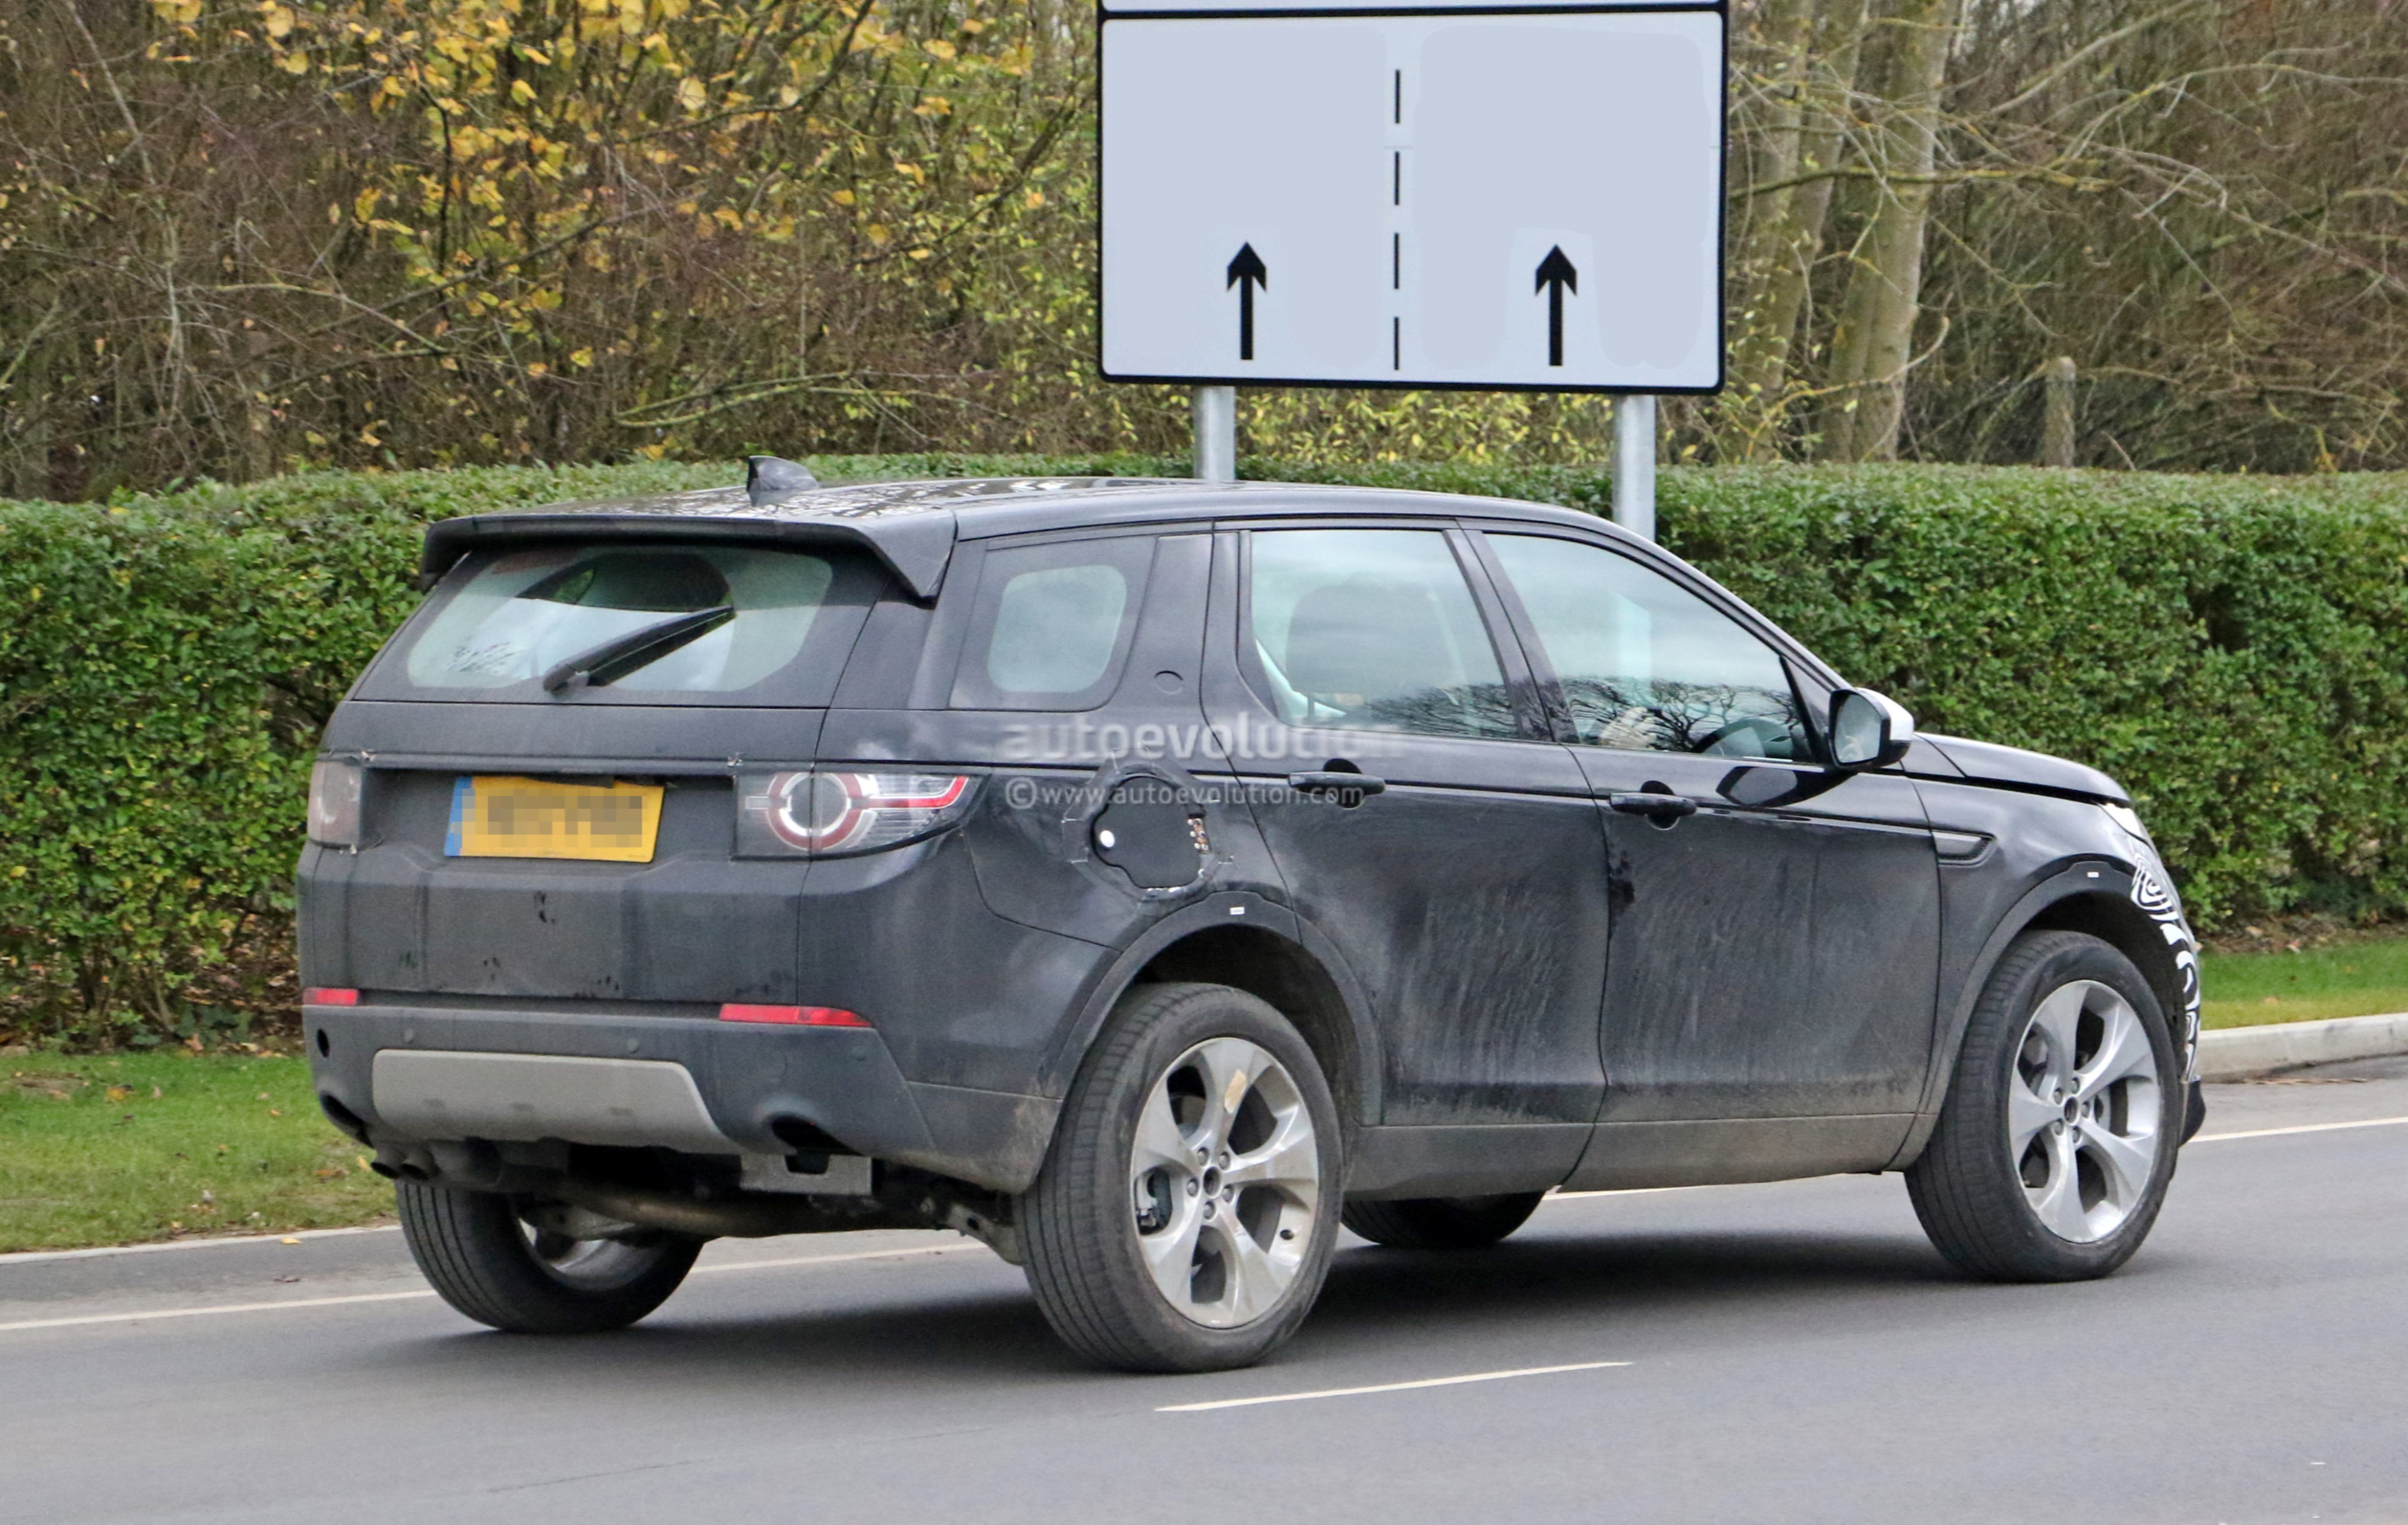 spyshots 2019 land rover discovery sport has makeshift fuel filler door autoevolution. Black Bedroom Furniture Sets. Home Design Ideas